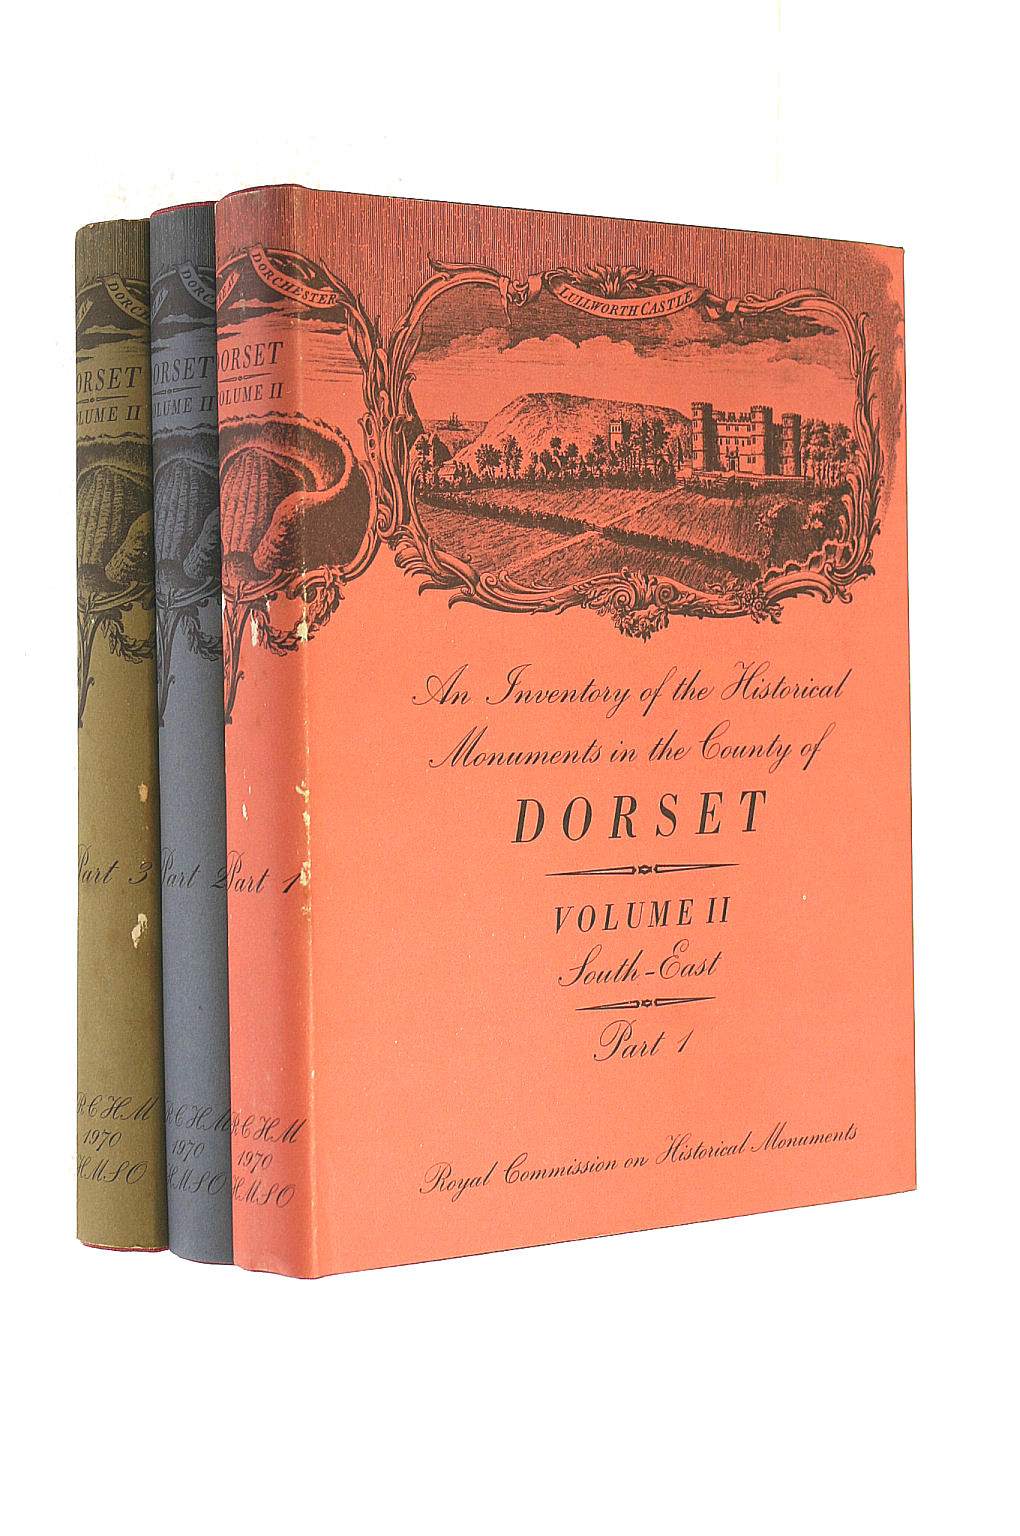 Image for Inventory Of Historical Monuments In The County Of Dorset :Volume II: South-East Part 1, 2 and 3